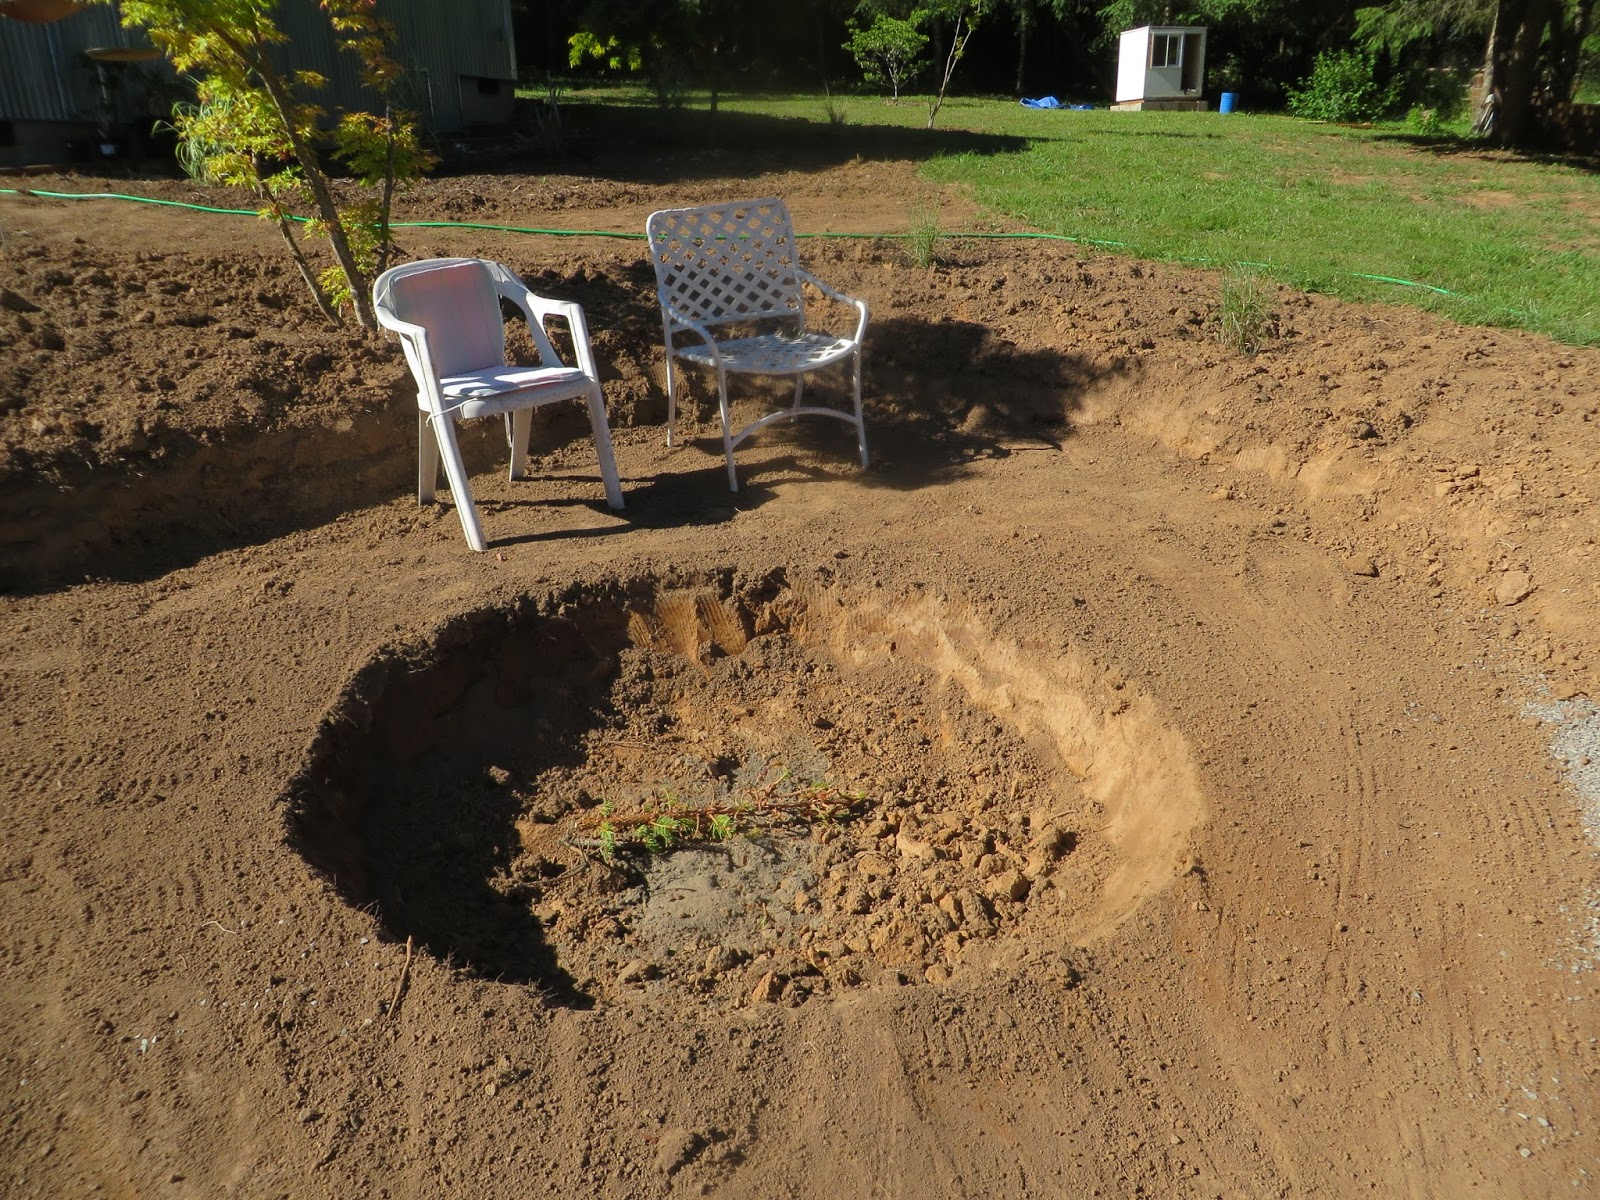 Making a New Garden: The Evolution of a Fire Pit